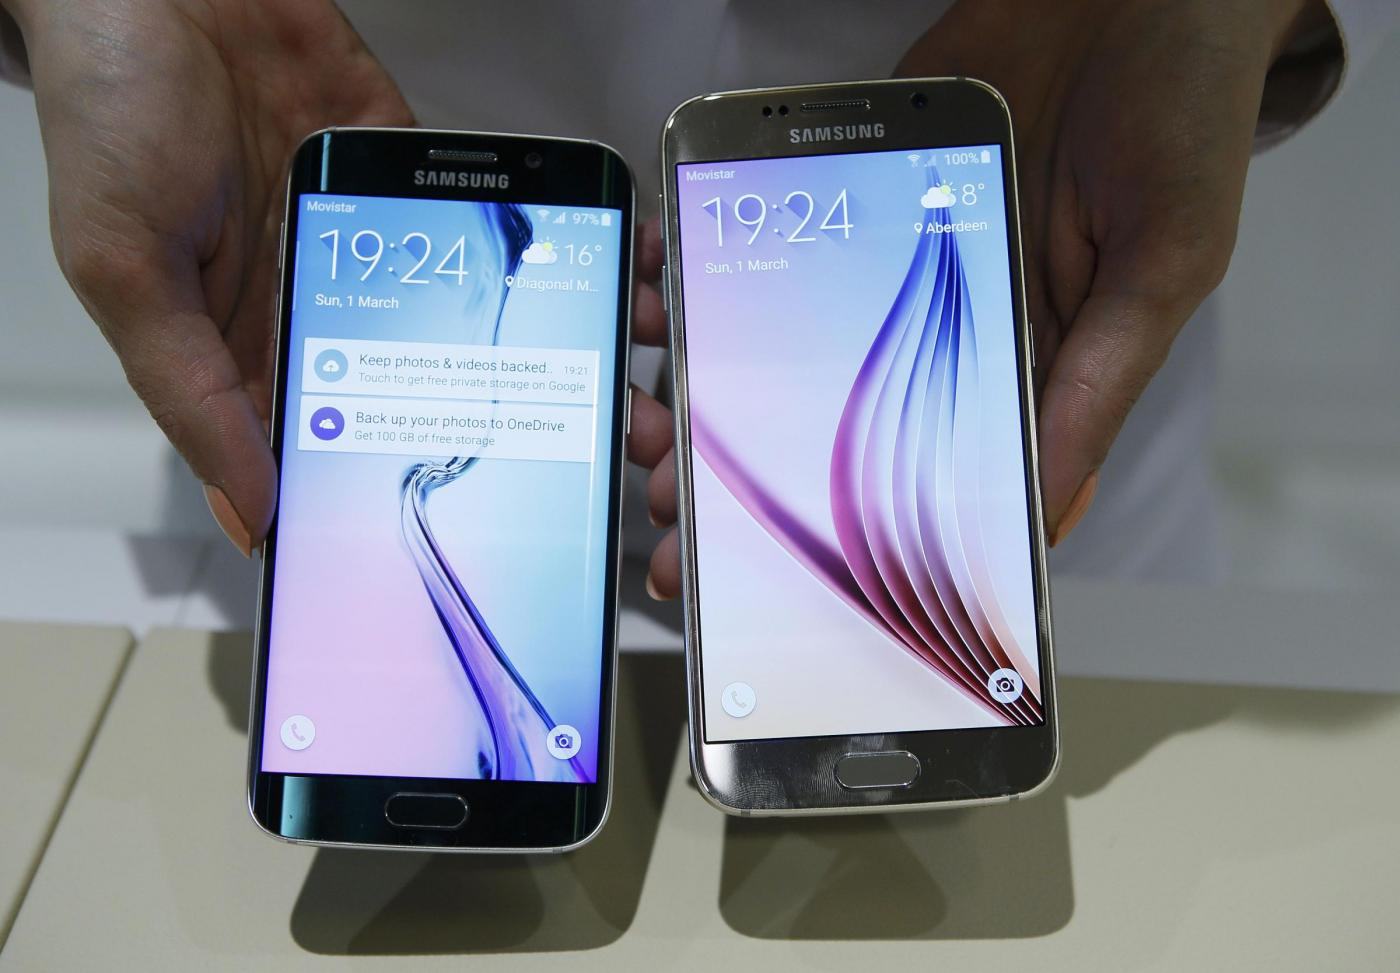 A hostess displays the Galaxy S6 and S6 edge smartphones at the Samsung Galaxy Unpacked event in Barcelona